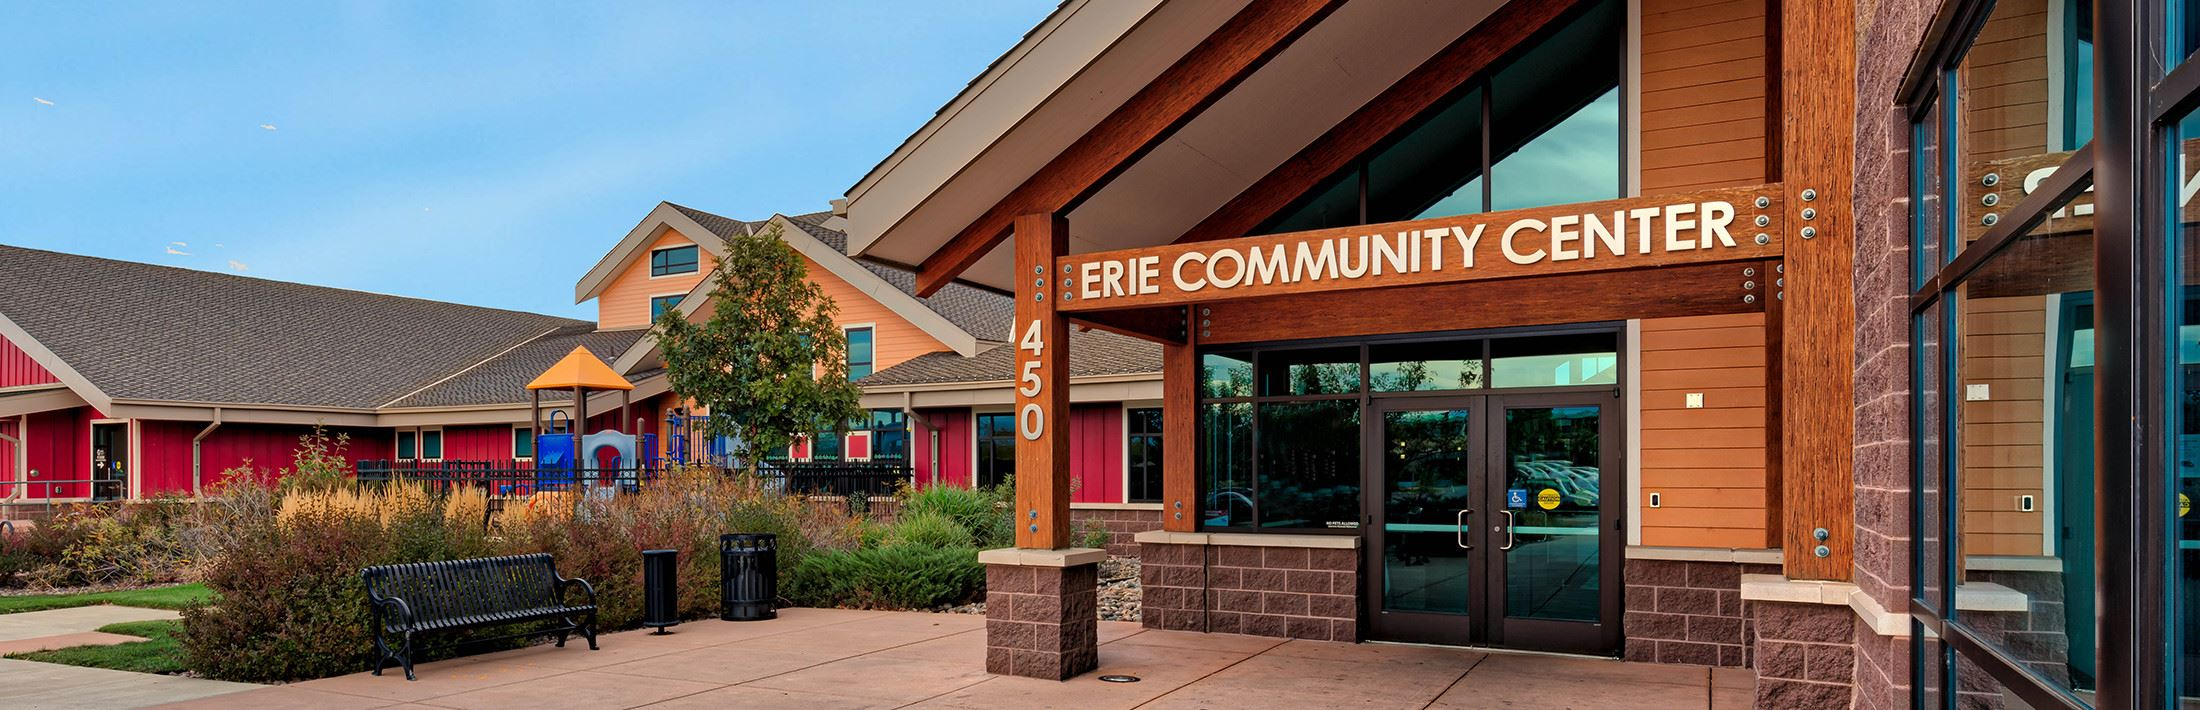 erie colorado